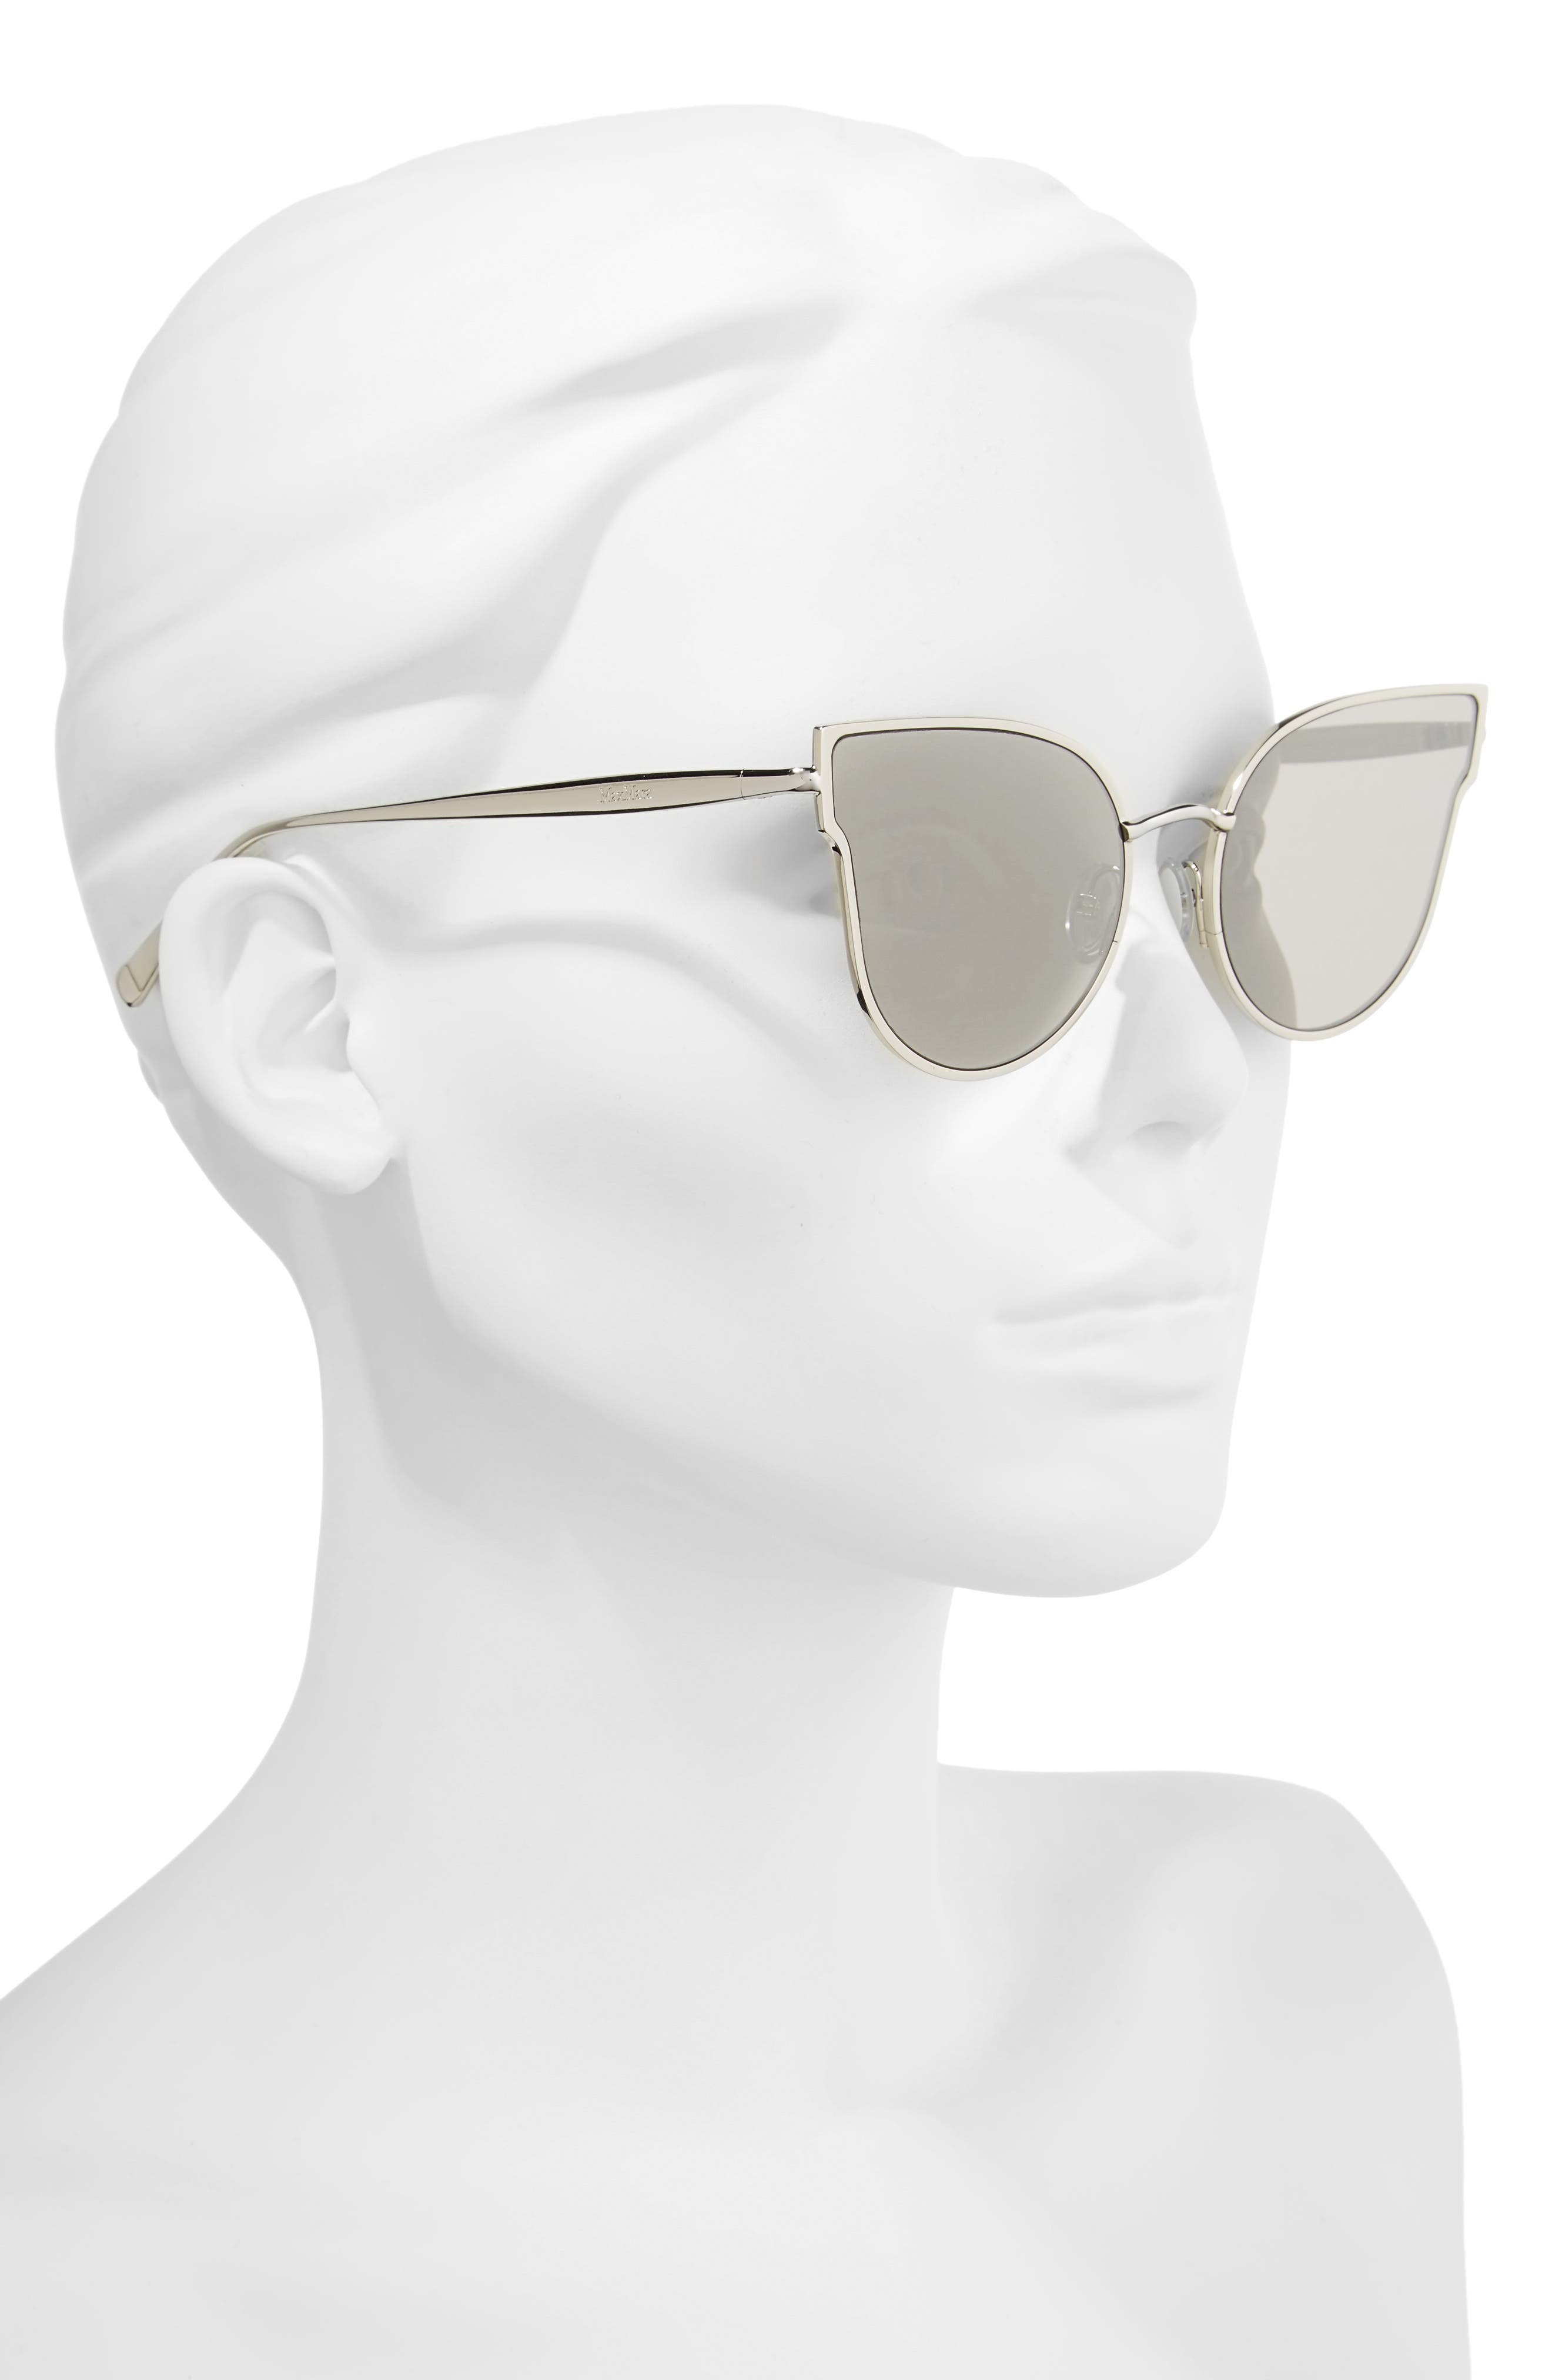 Ilde III 57mm Mirrored Cat Eye Sunglasses,                             Alternate thumbnail 2, color,                             Smoke Silver